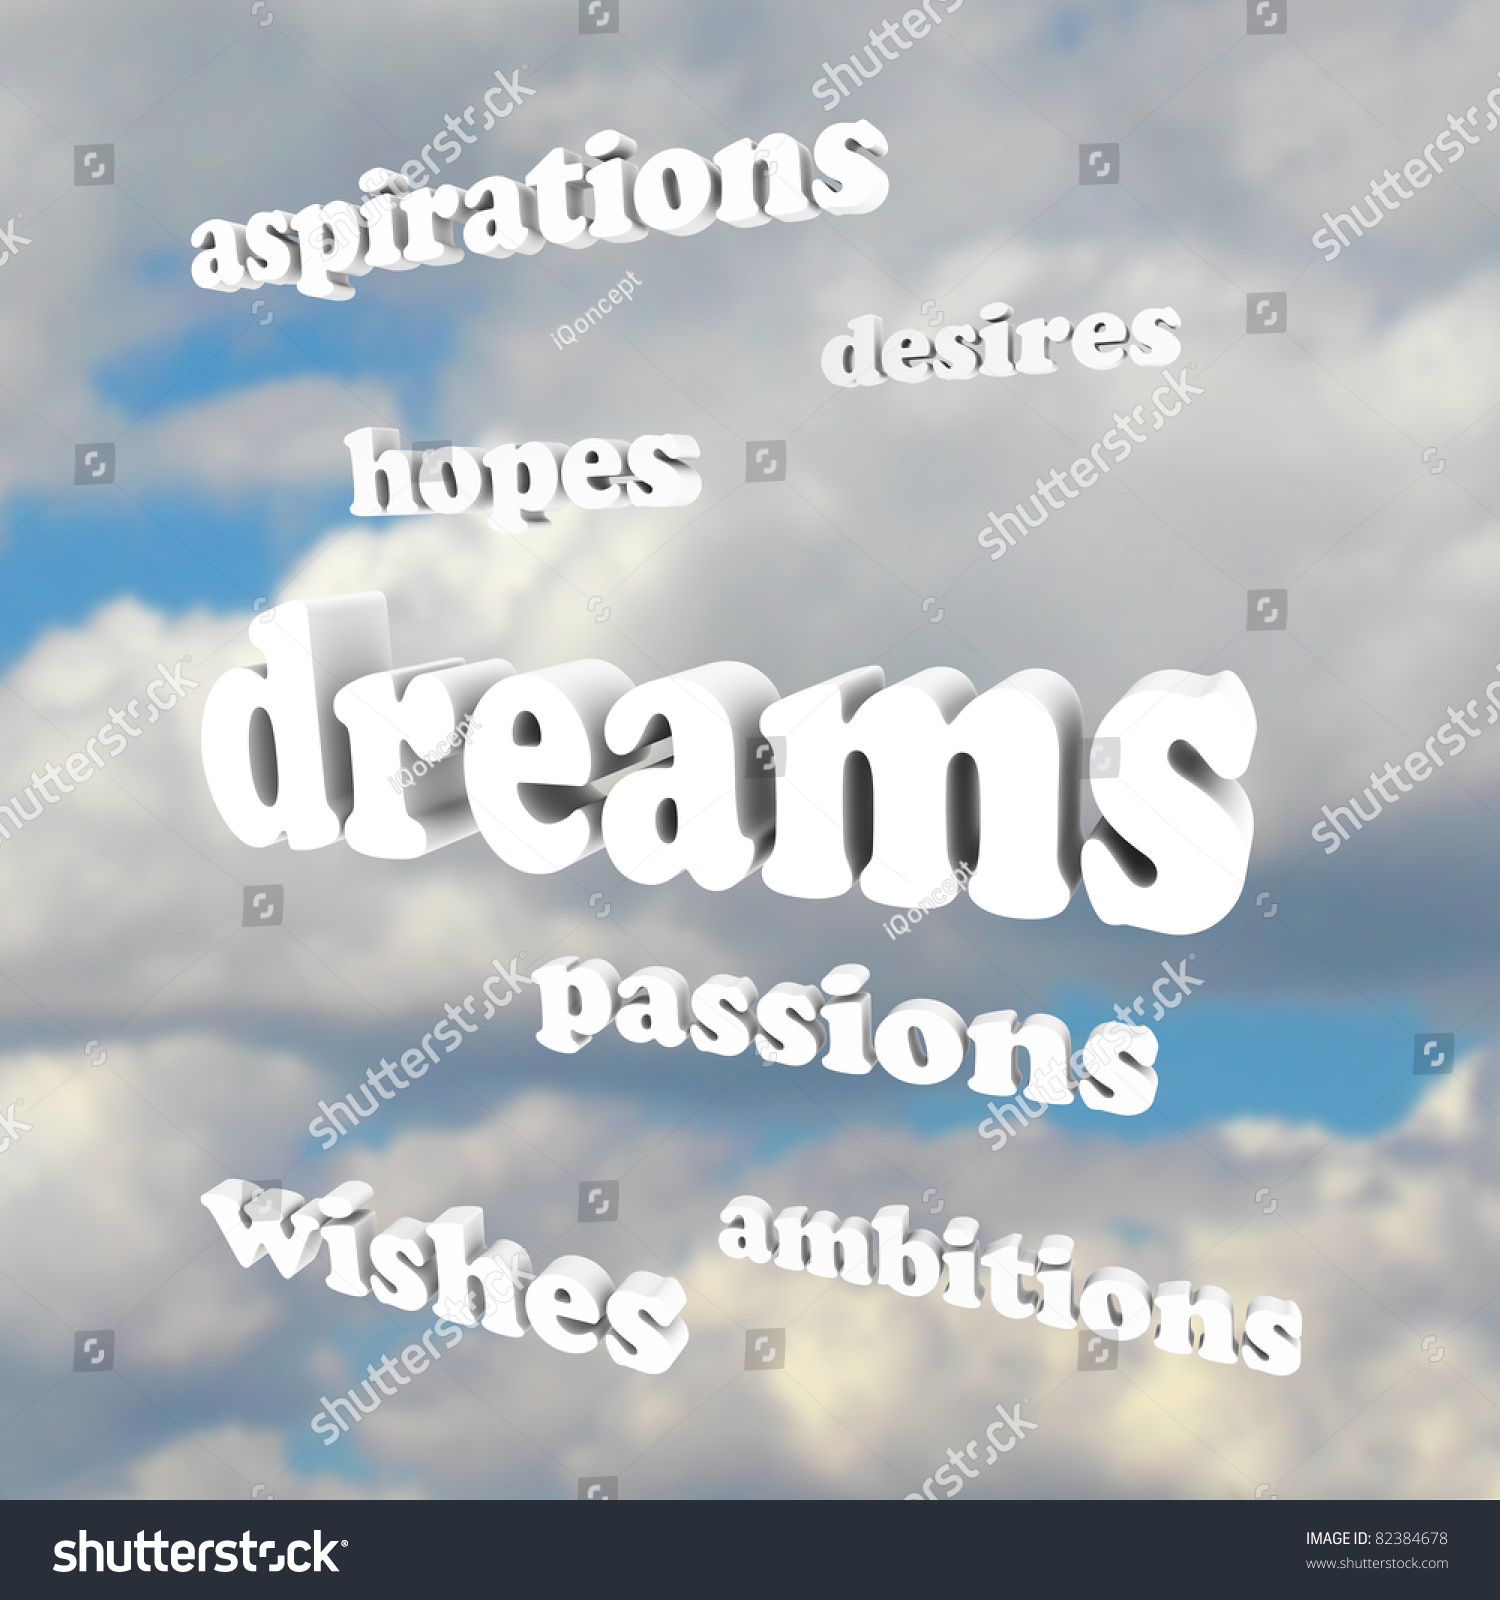 my hopes goals and aspirations To reach my goals, i realize that i must pursue an eight year college   unfortunately, my family cannot afford to pay for my entire education, so i hope to  use my.